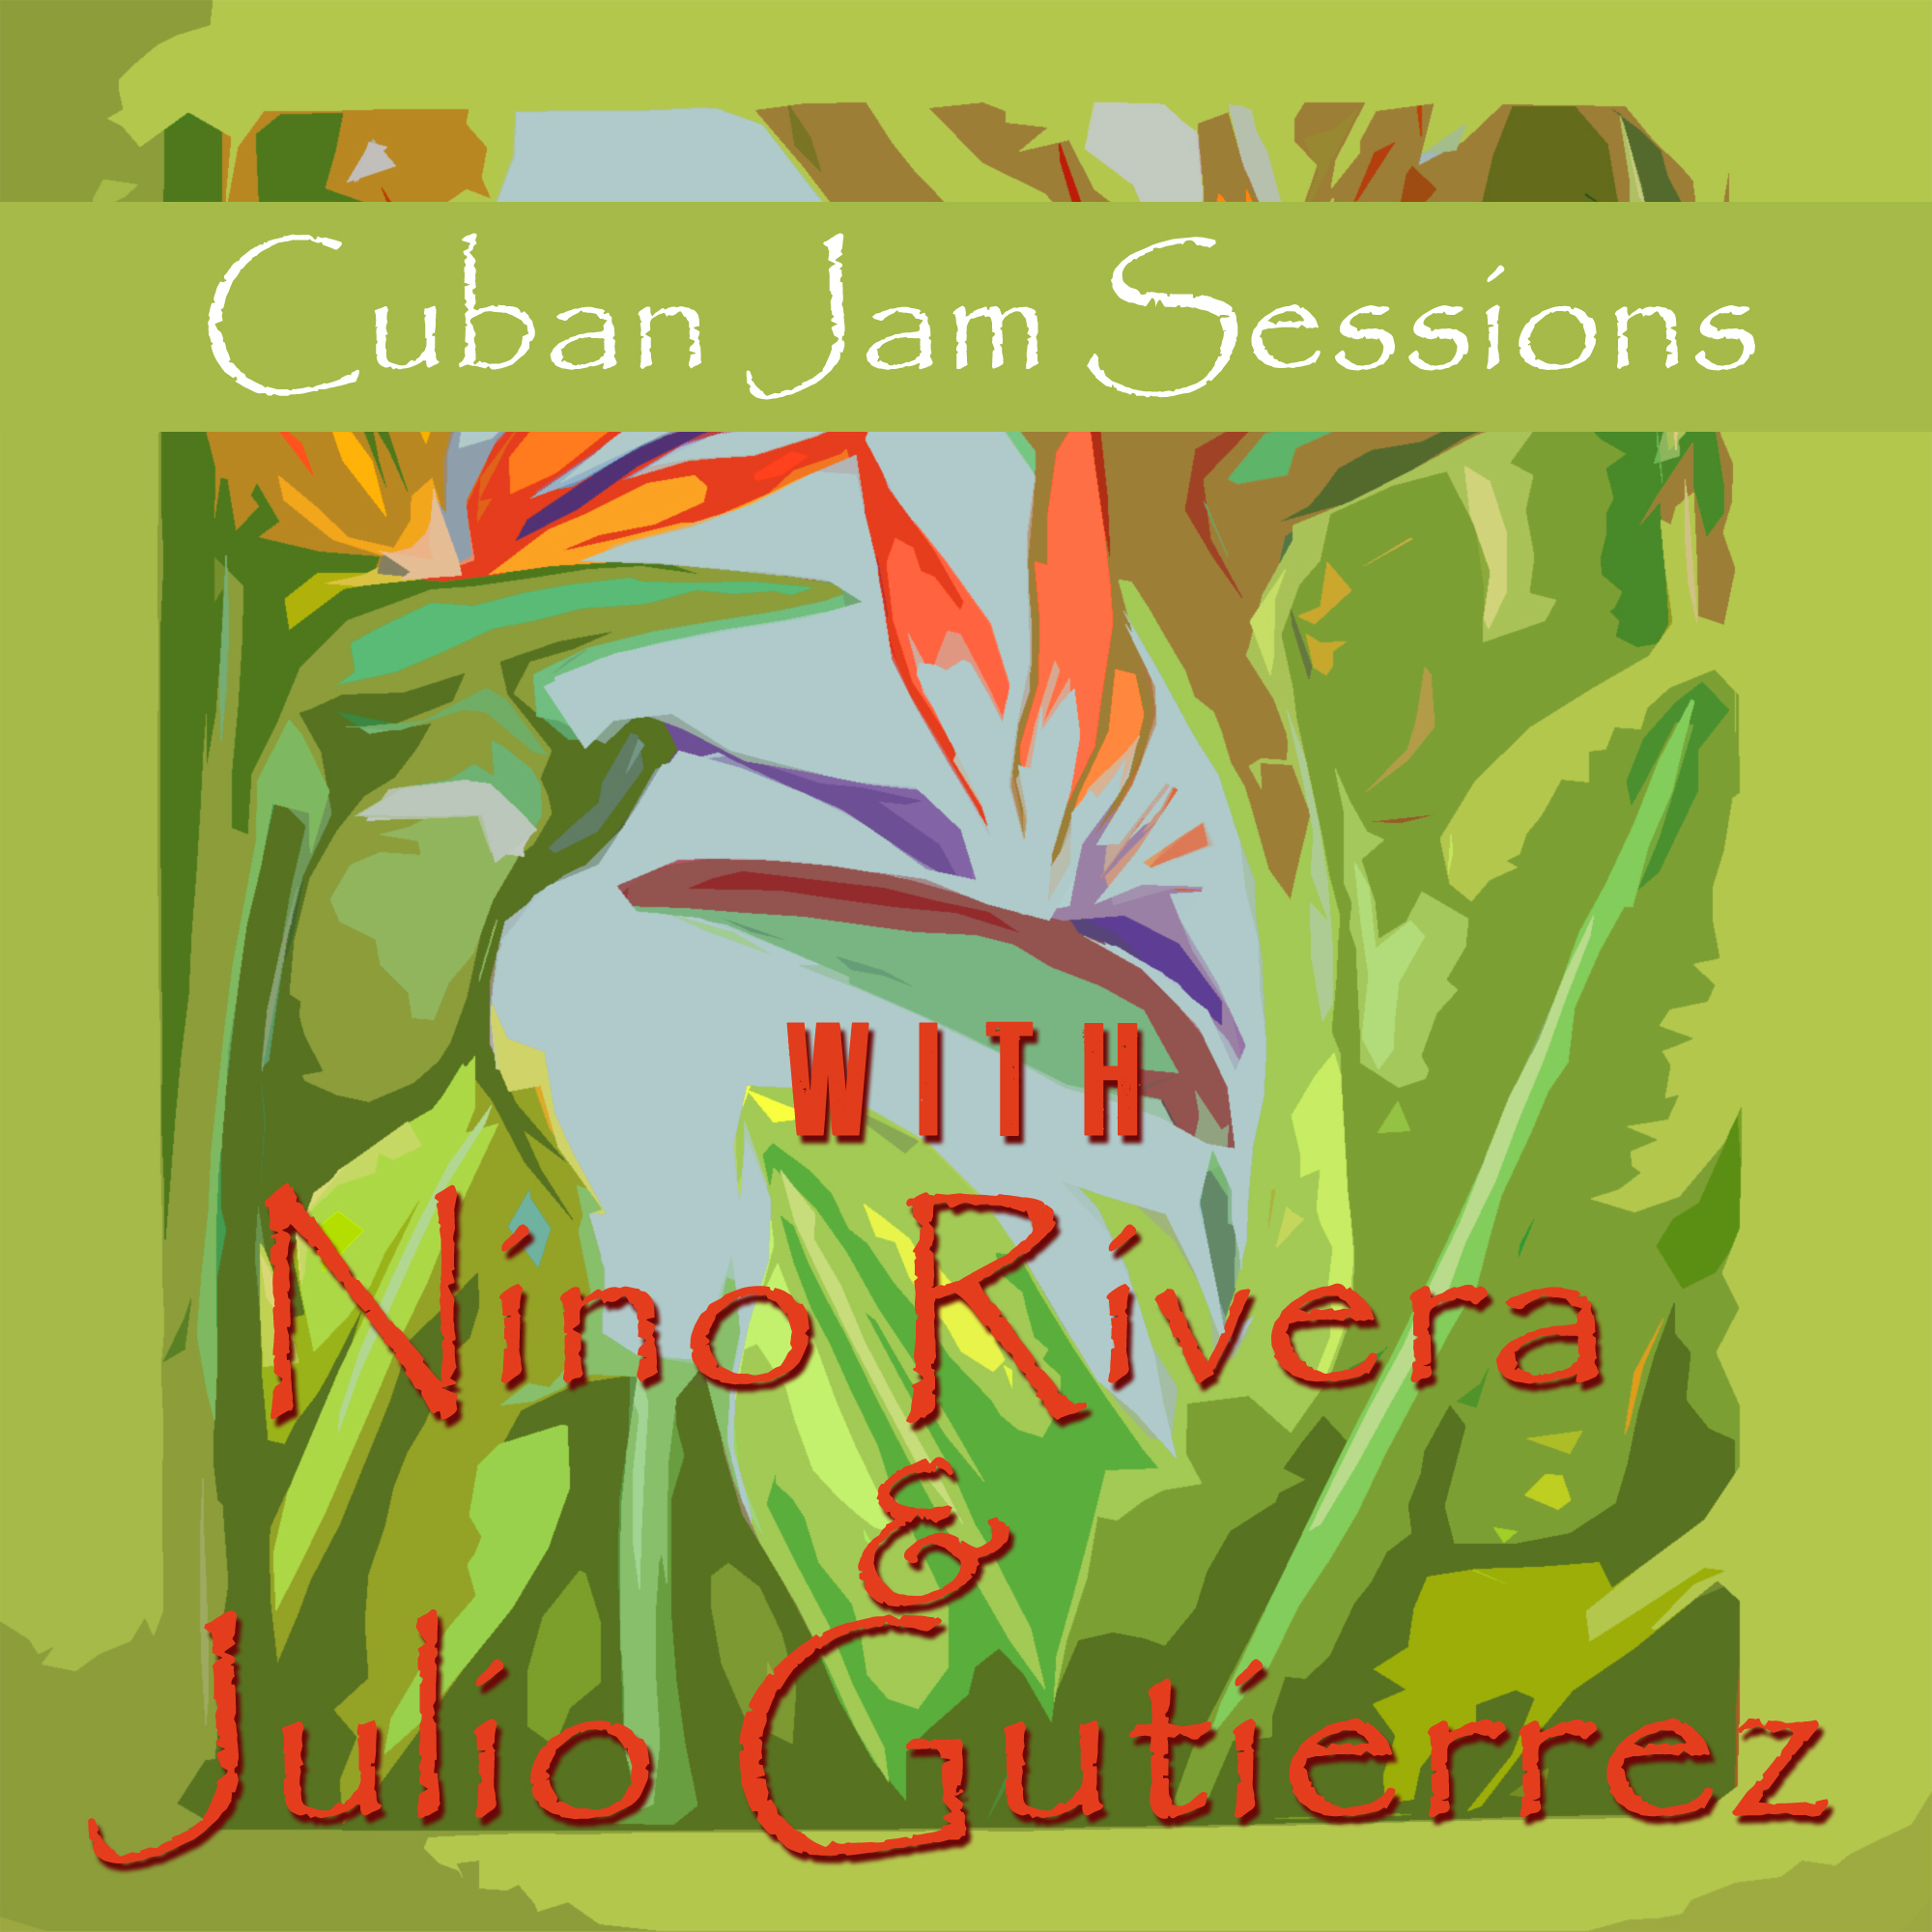 Cuban Jam Sessions With Nino Rivera & Julio Gutierrez